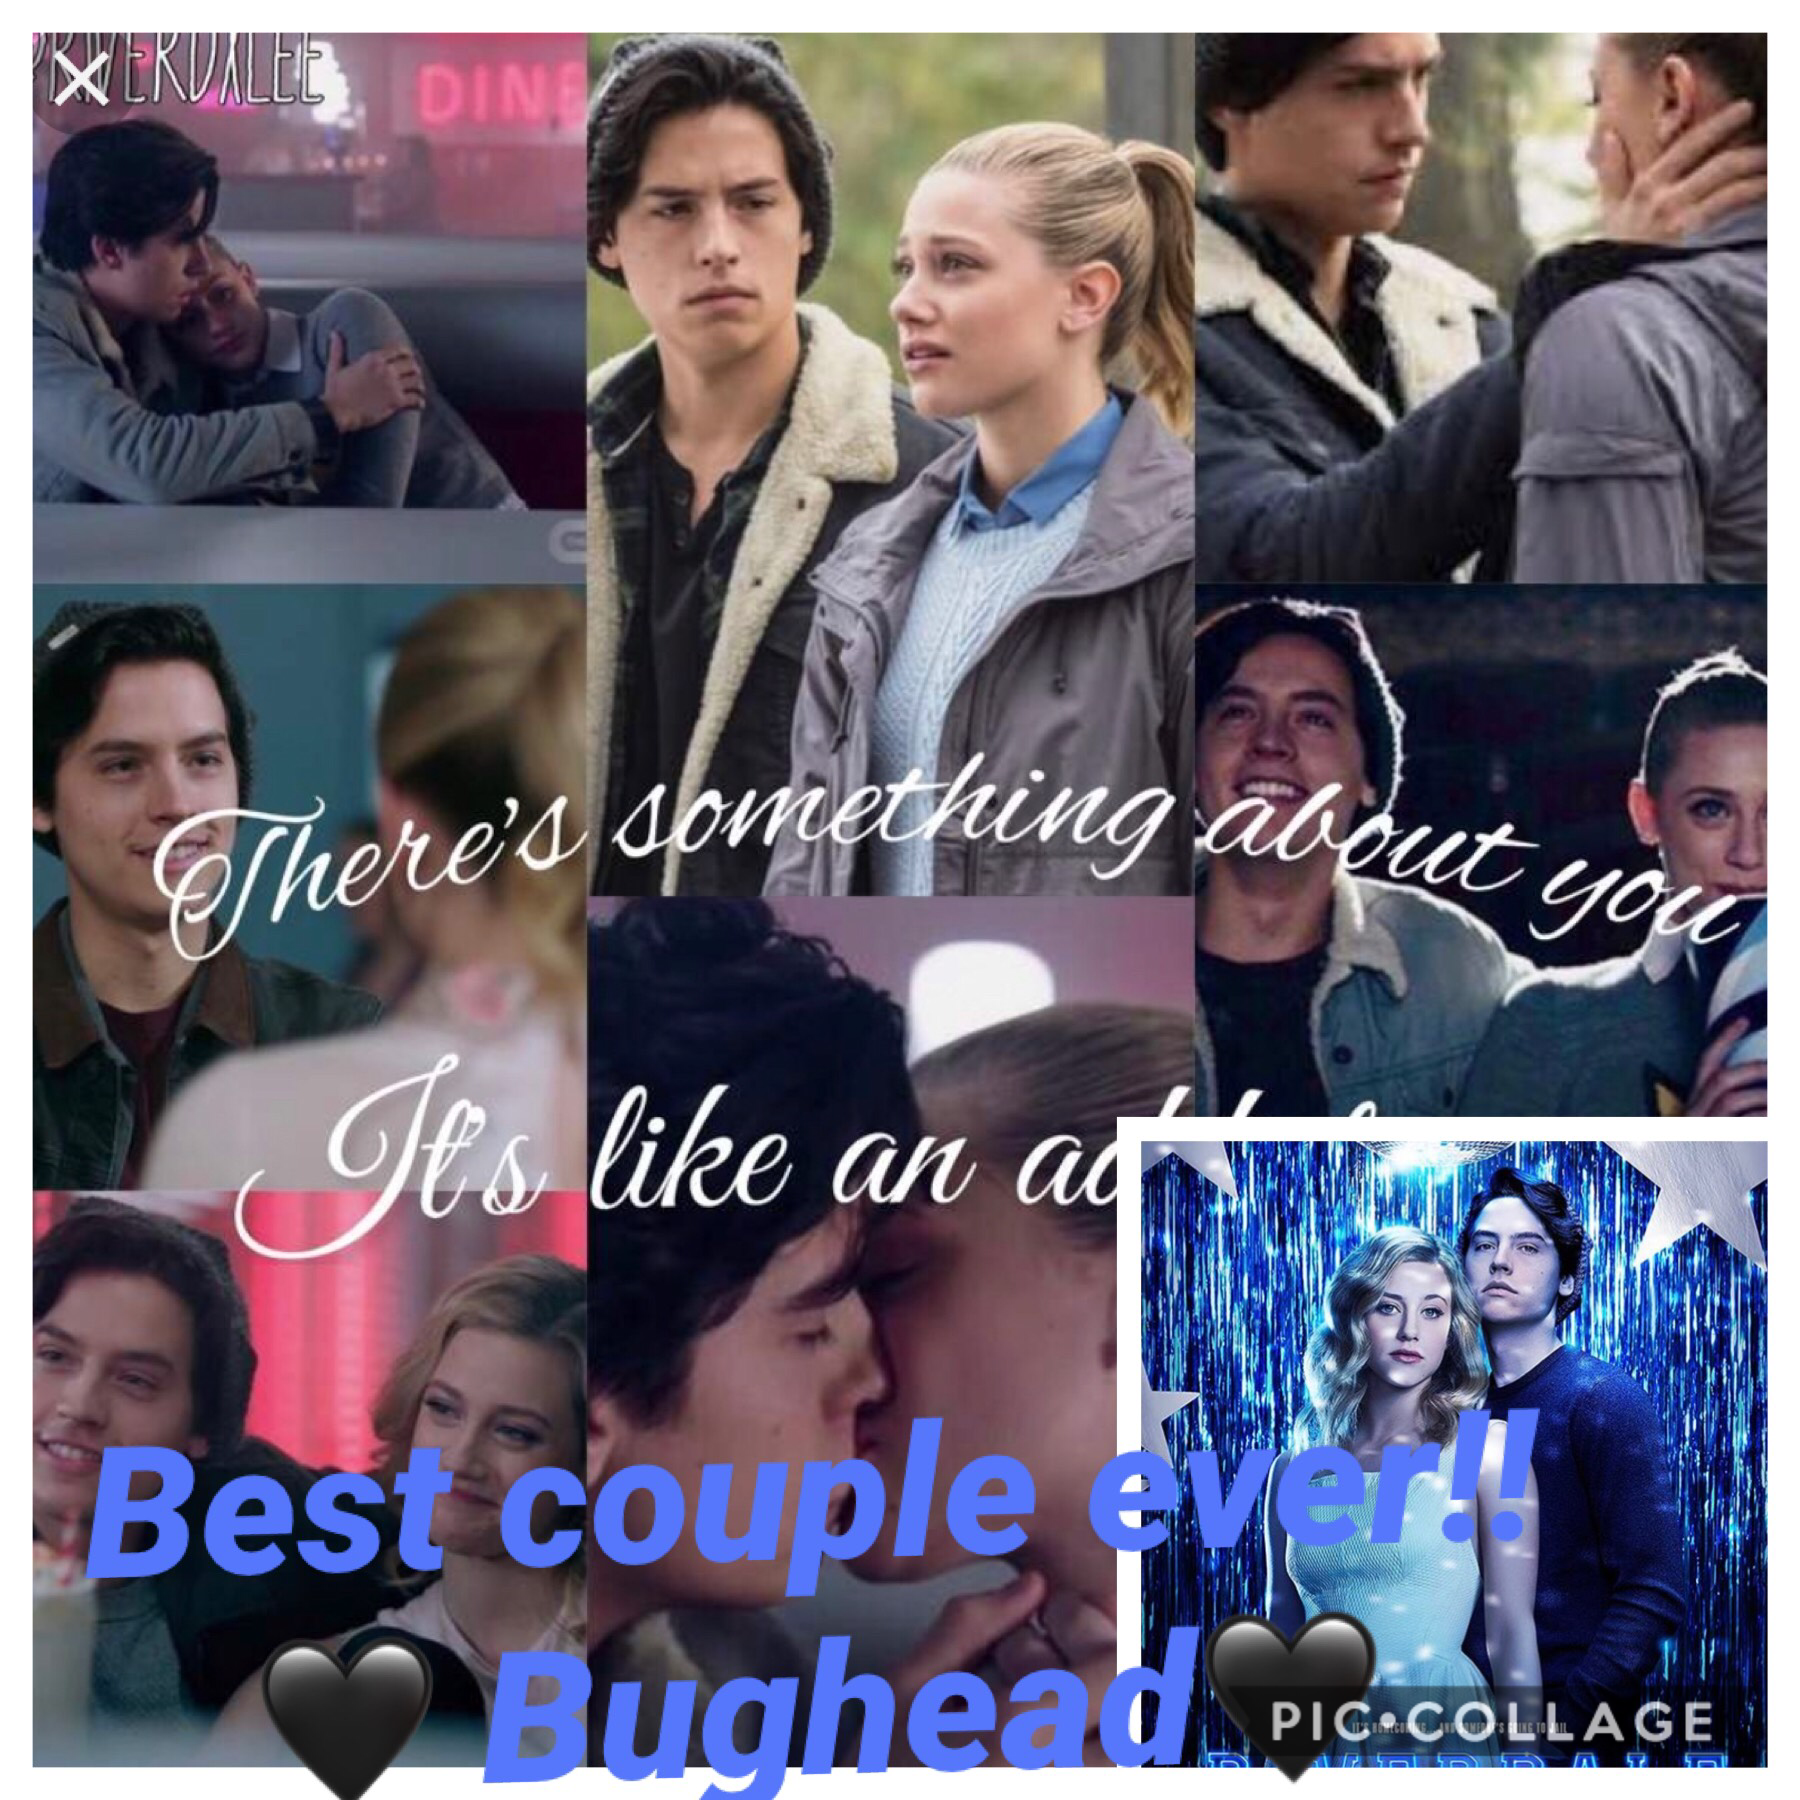 There are the cutest couple ever like if agree🖤🖤🖤 They are dating in real life if u people didn't know!!! GO TEAM BUGHEAD!!!!!!!!!!!🖤🖤🖤🖤🖤